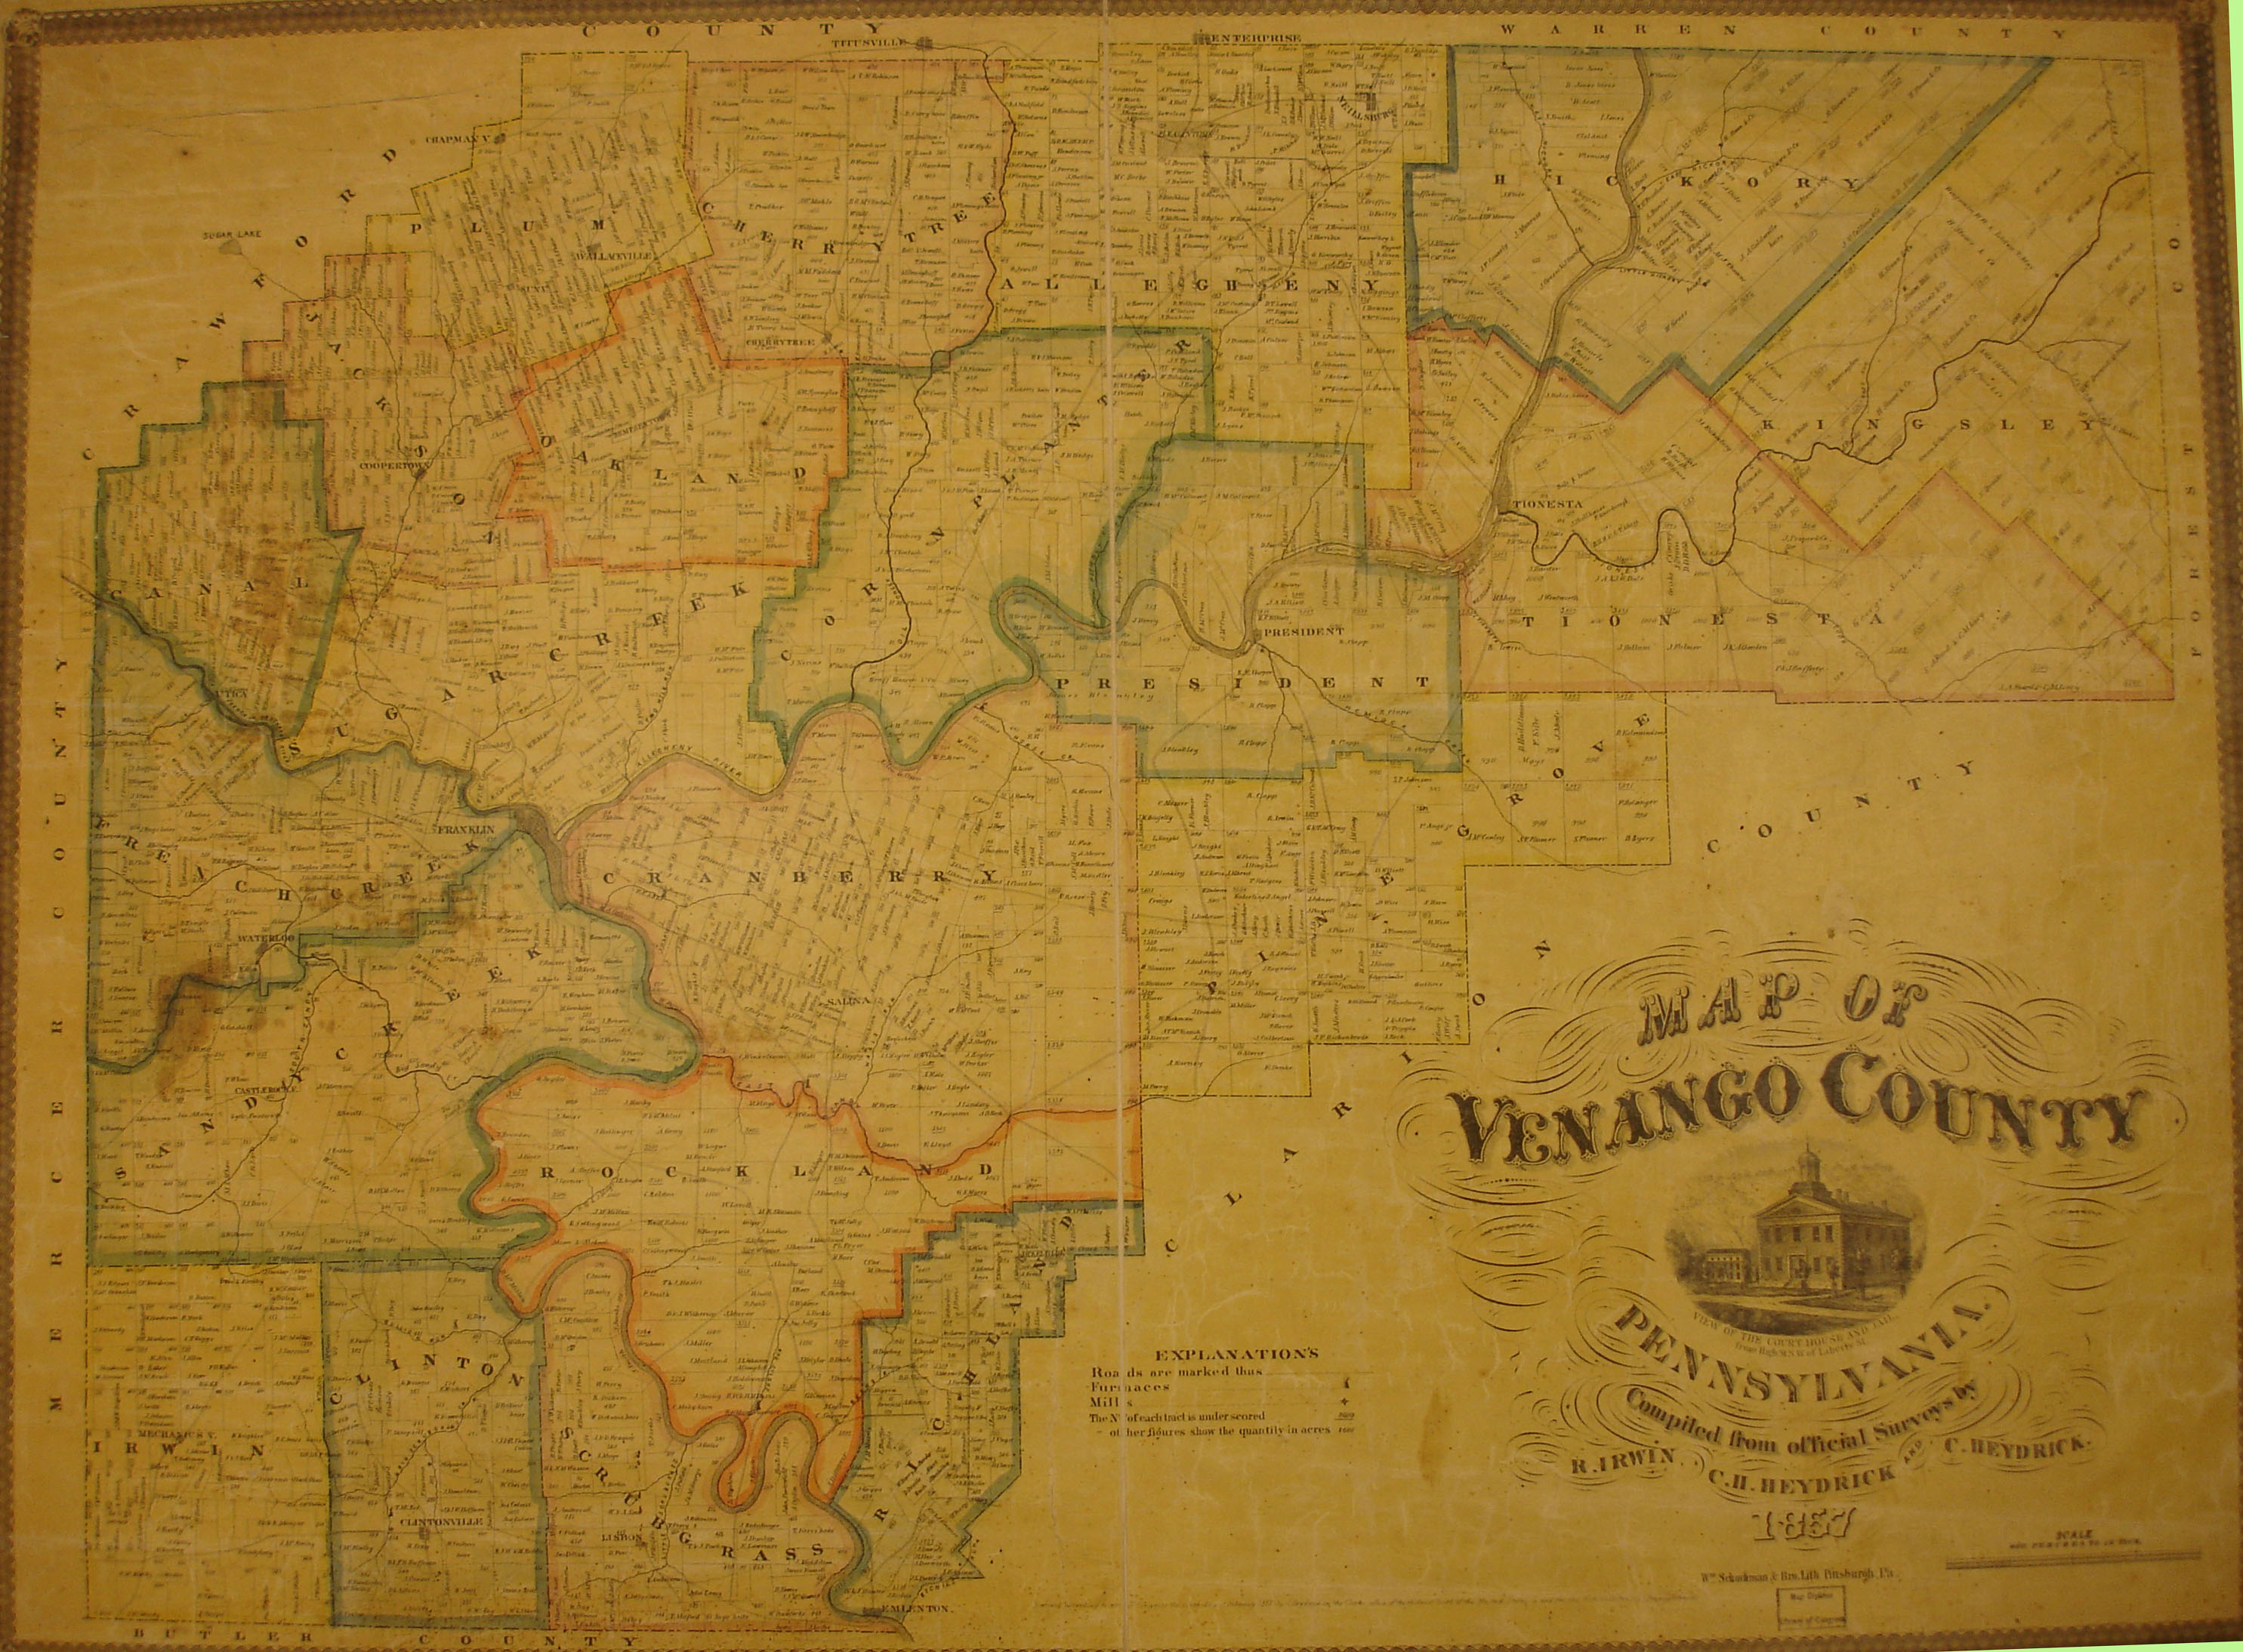 Venango County Resources on map of united states of america with highways, map of mifflin township pa, map of cranberry pa 16066, map of marshall township pa, map of ohio township pa, map of pittsburgh hill district, map of cranberry township nj, map of adams township pa, dunkard township greene county pa, streets of cranberry pa, cranberry twp pa, map of ross township, map of slippery rock township pa, cranberry water park cranberry pa, city of cranberry pa, airial view of cranberry township pa, restaurants cranberry township pa, hotels cranberry township pa, graham park cranberry township pa, map of cranberry township restaurants,